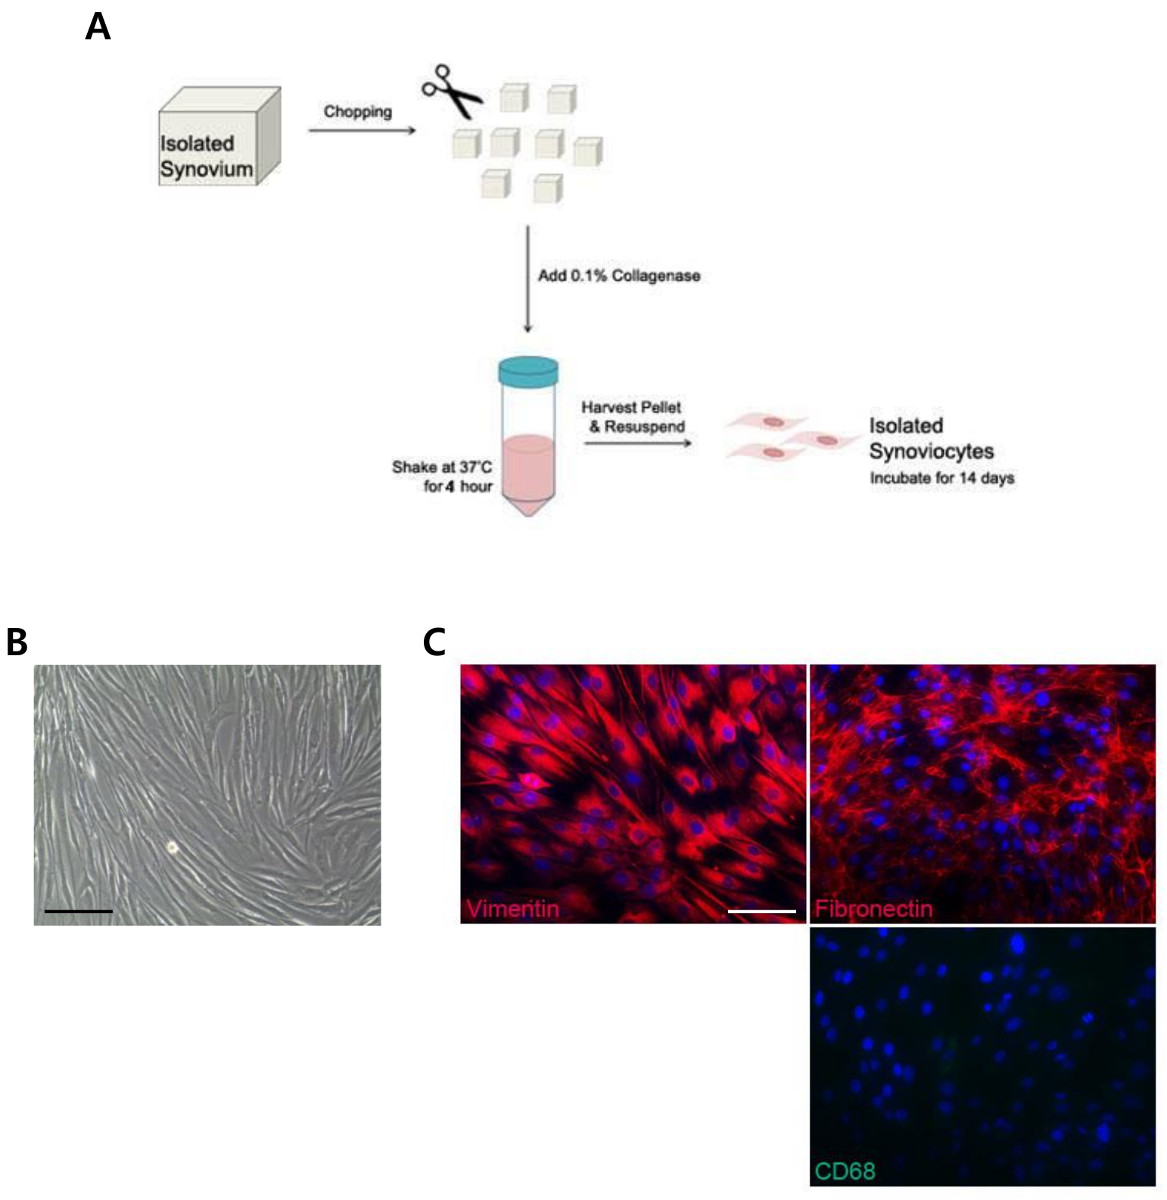 Generation of Induced-pluripotent Stem Cells Using